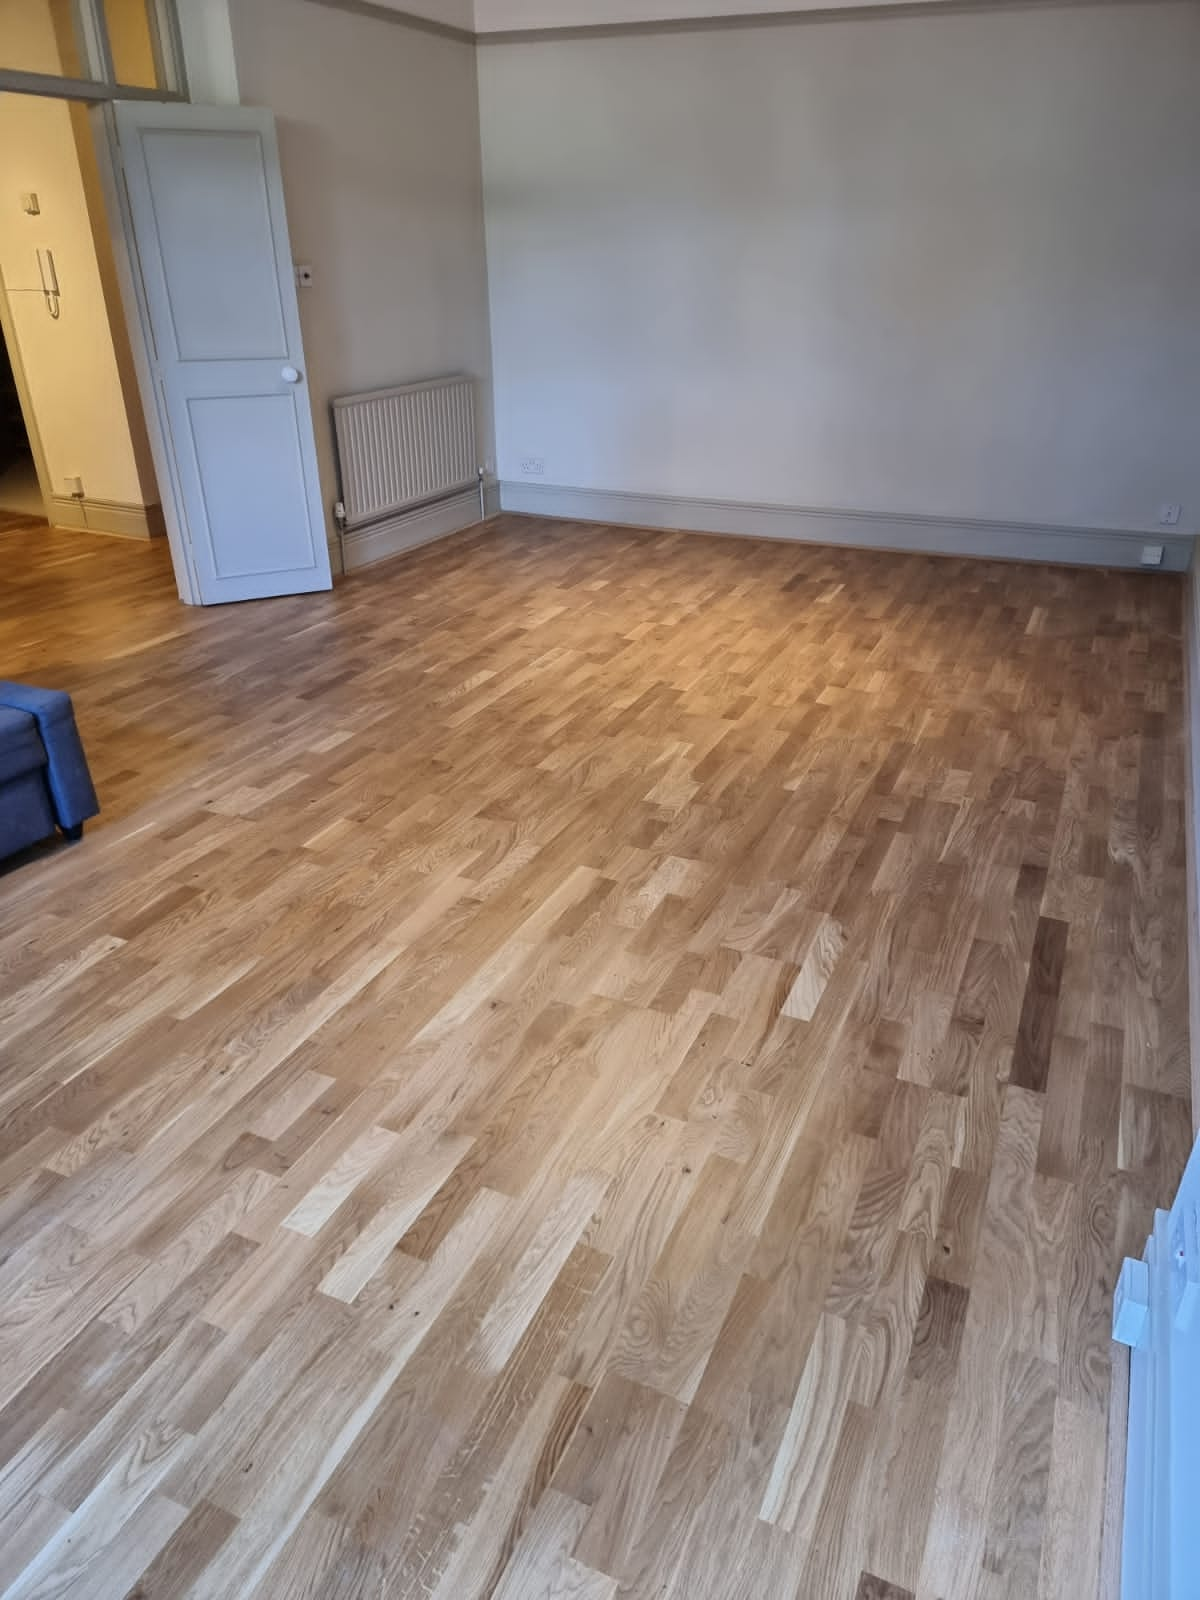 Holt Oak Wood Flooring Yardley in Lambeth 2